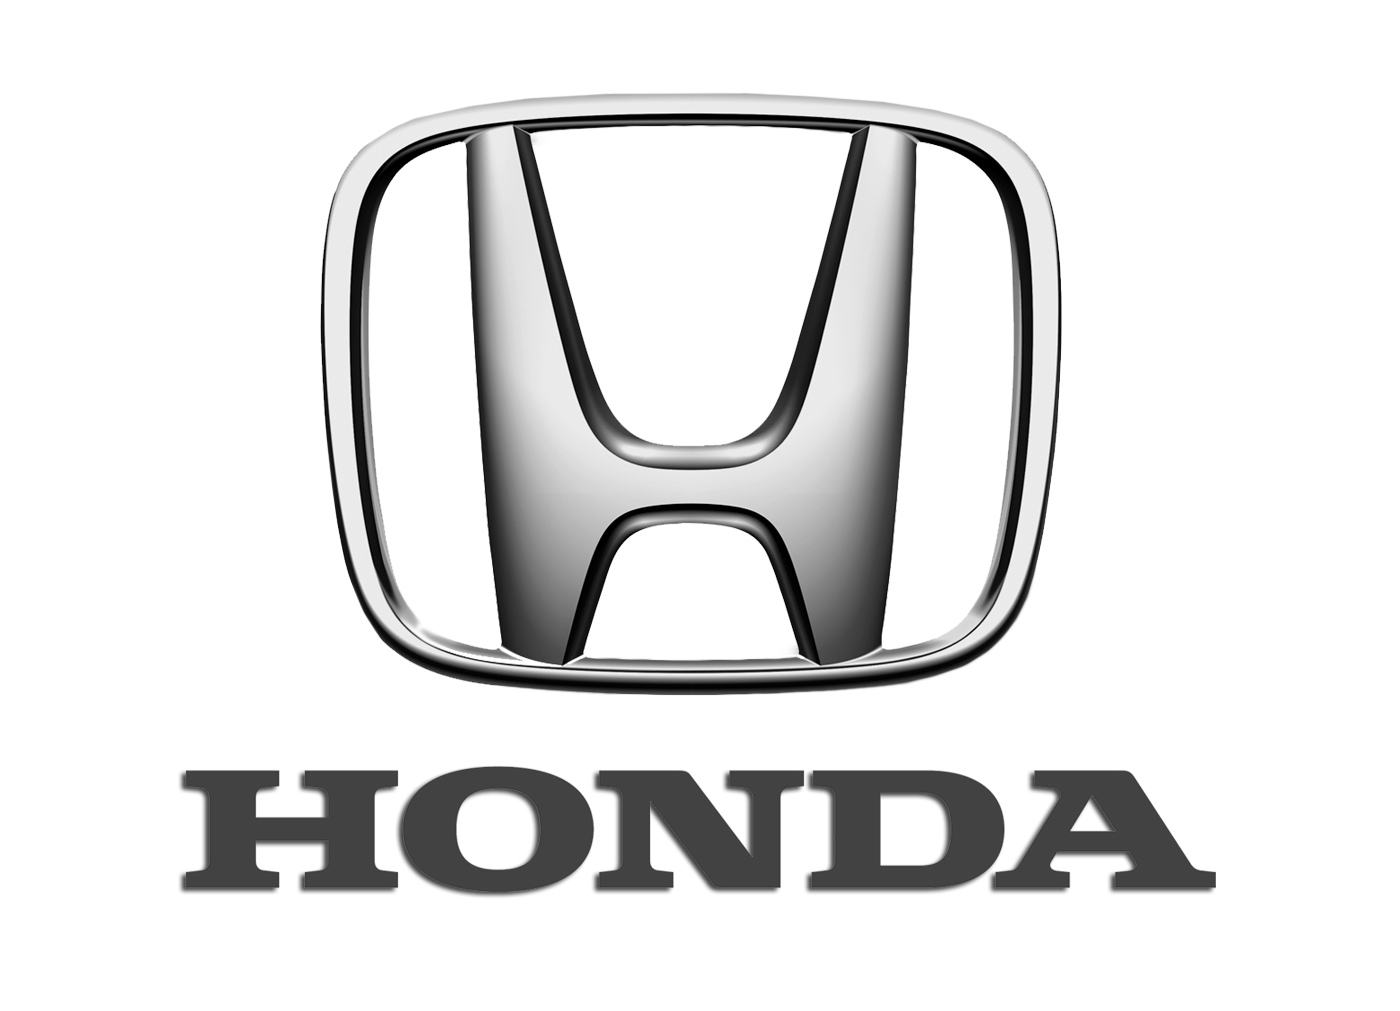 Used Honda Cars For Sale In Snohomish County